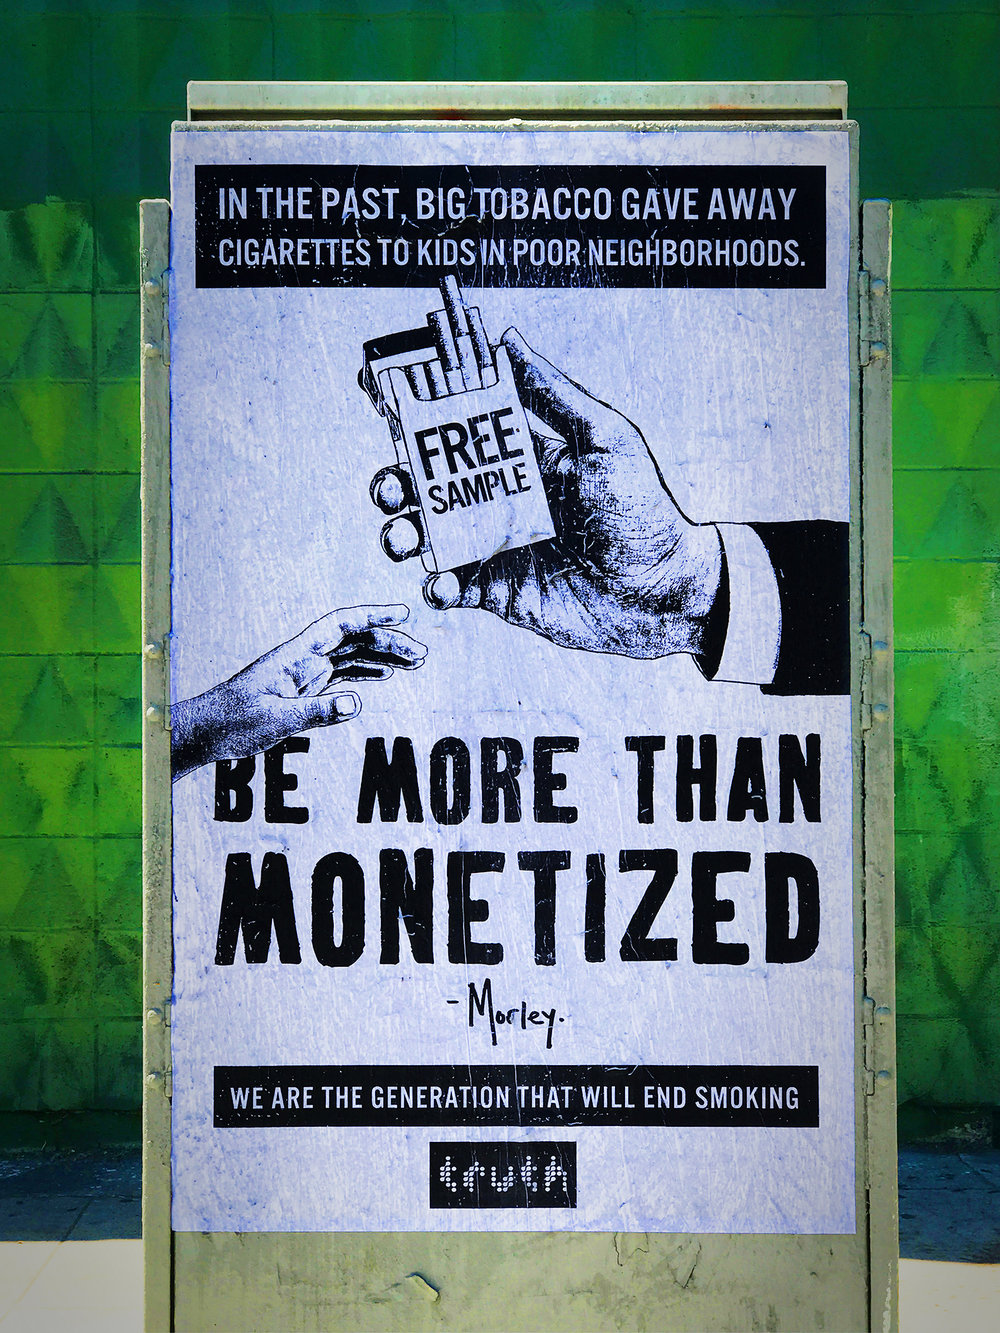 Artwork commissioned by anti-smoking advocate Truth.